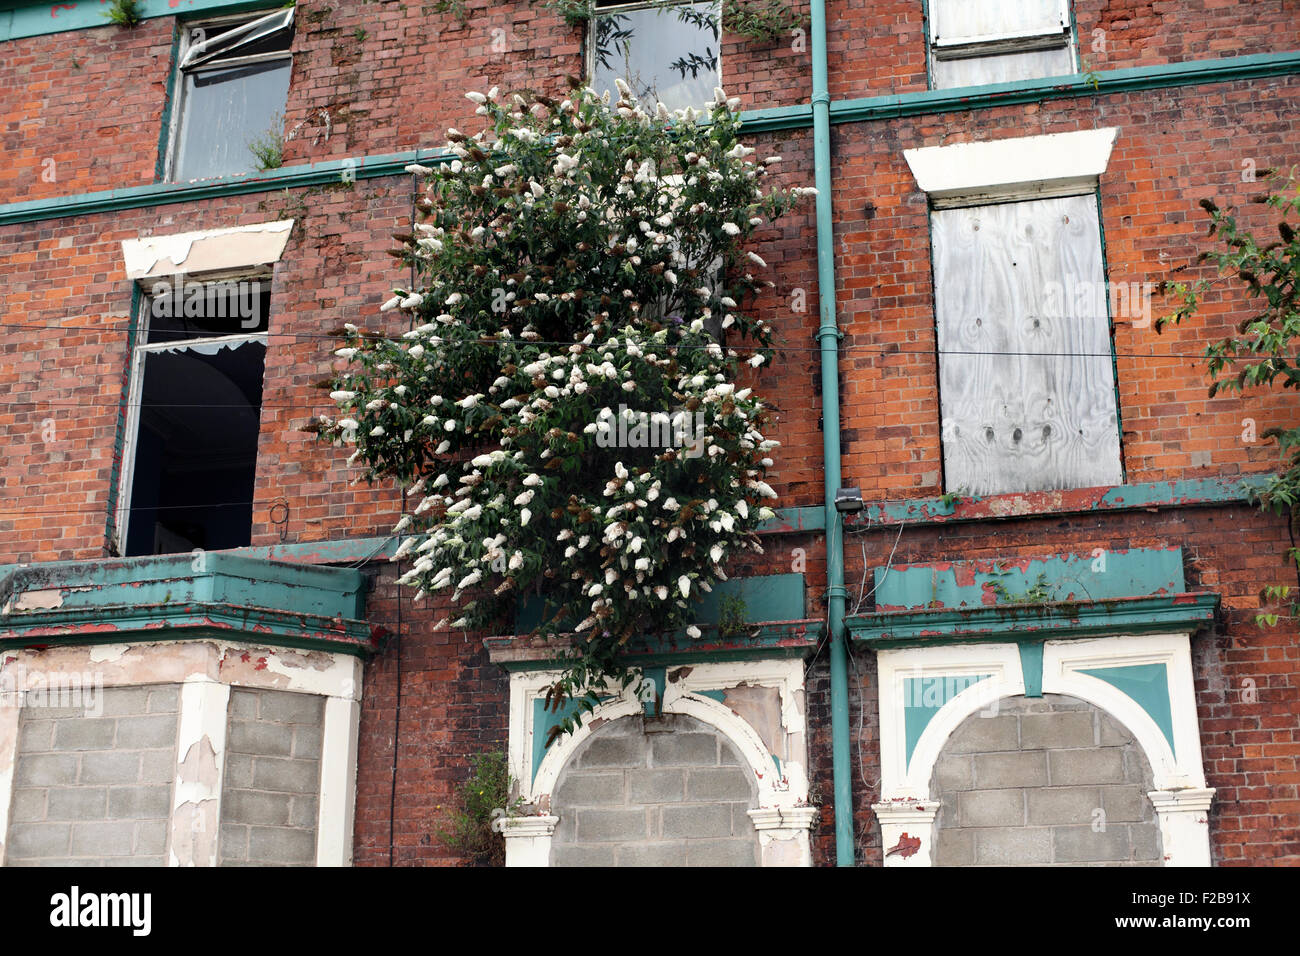 White buddleia growing out of a rundown disused building, Hawthorne Road, Liverpool. - Stock Image